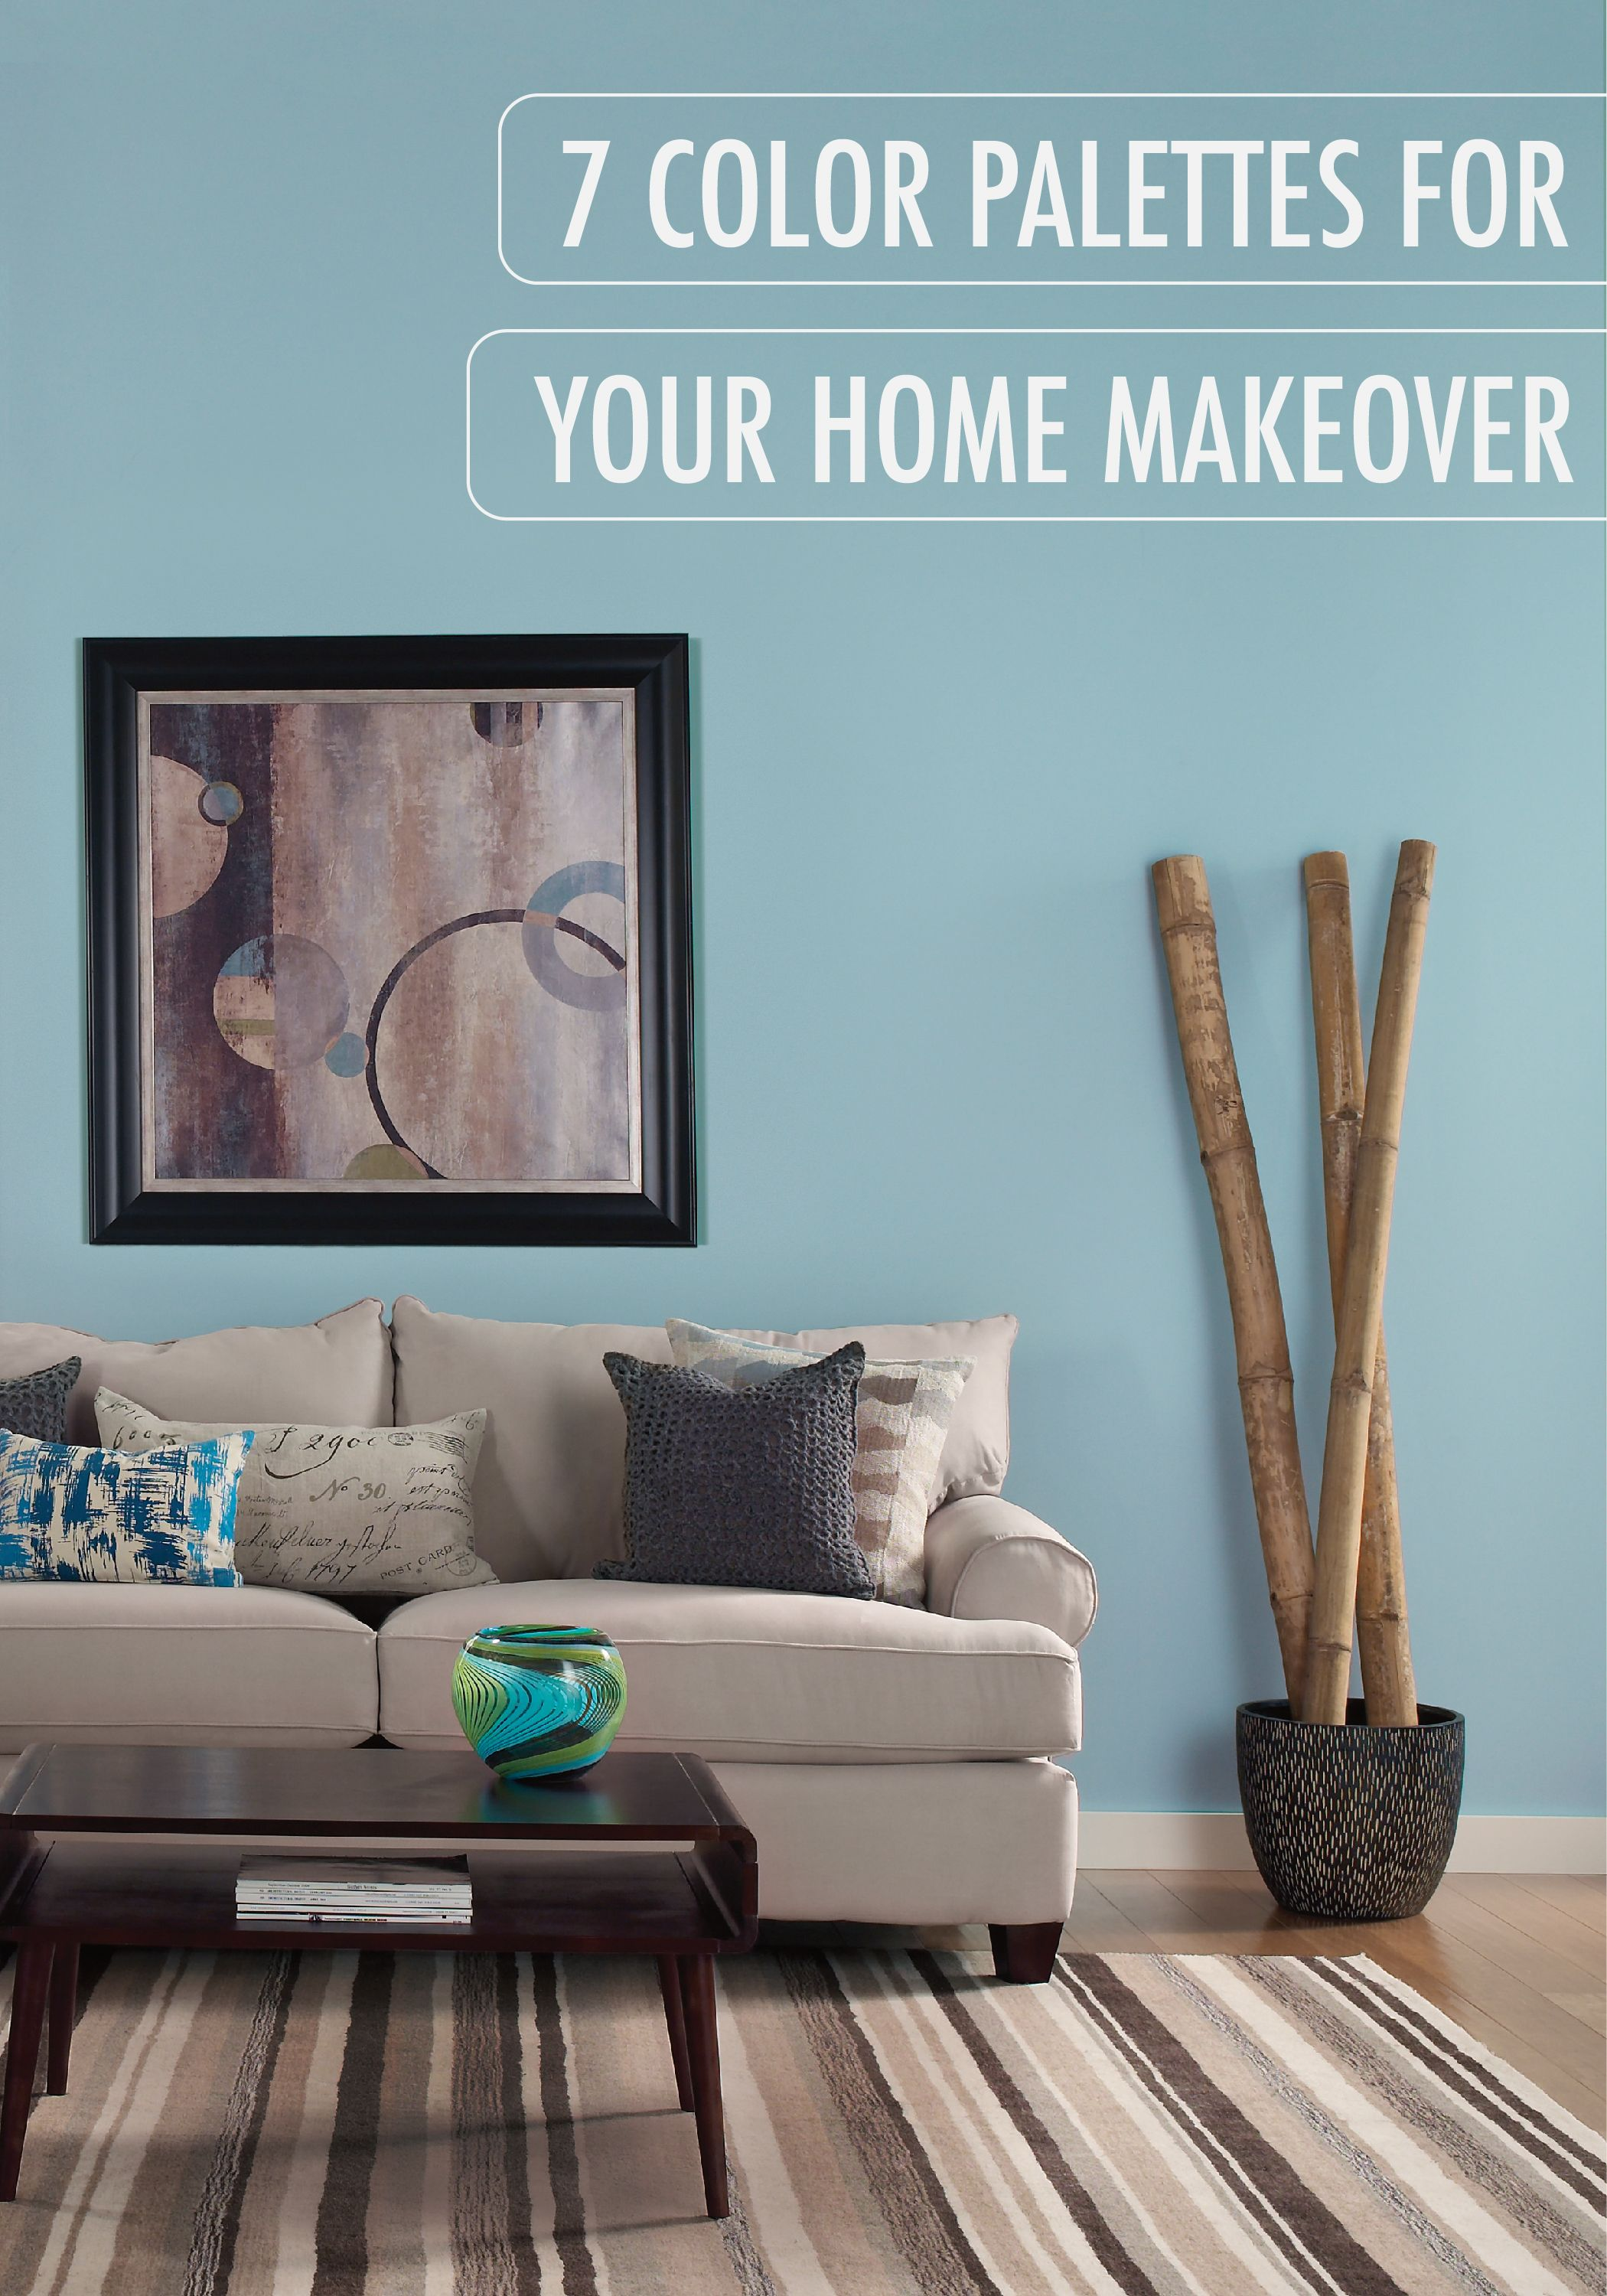 Congratulations on your new home! Start the process of making the space your own, with these 7 color palettes for your room makeover. With the featured combination of Catalina Coast and Swiss Coffee, it's easier than ever to express your personal style!